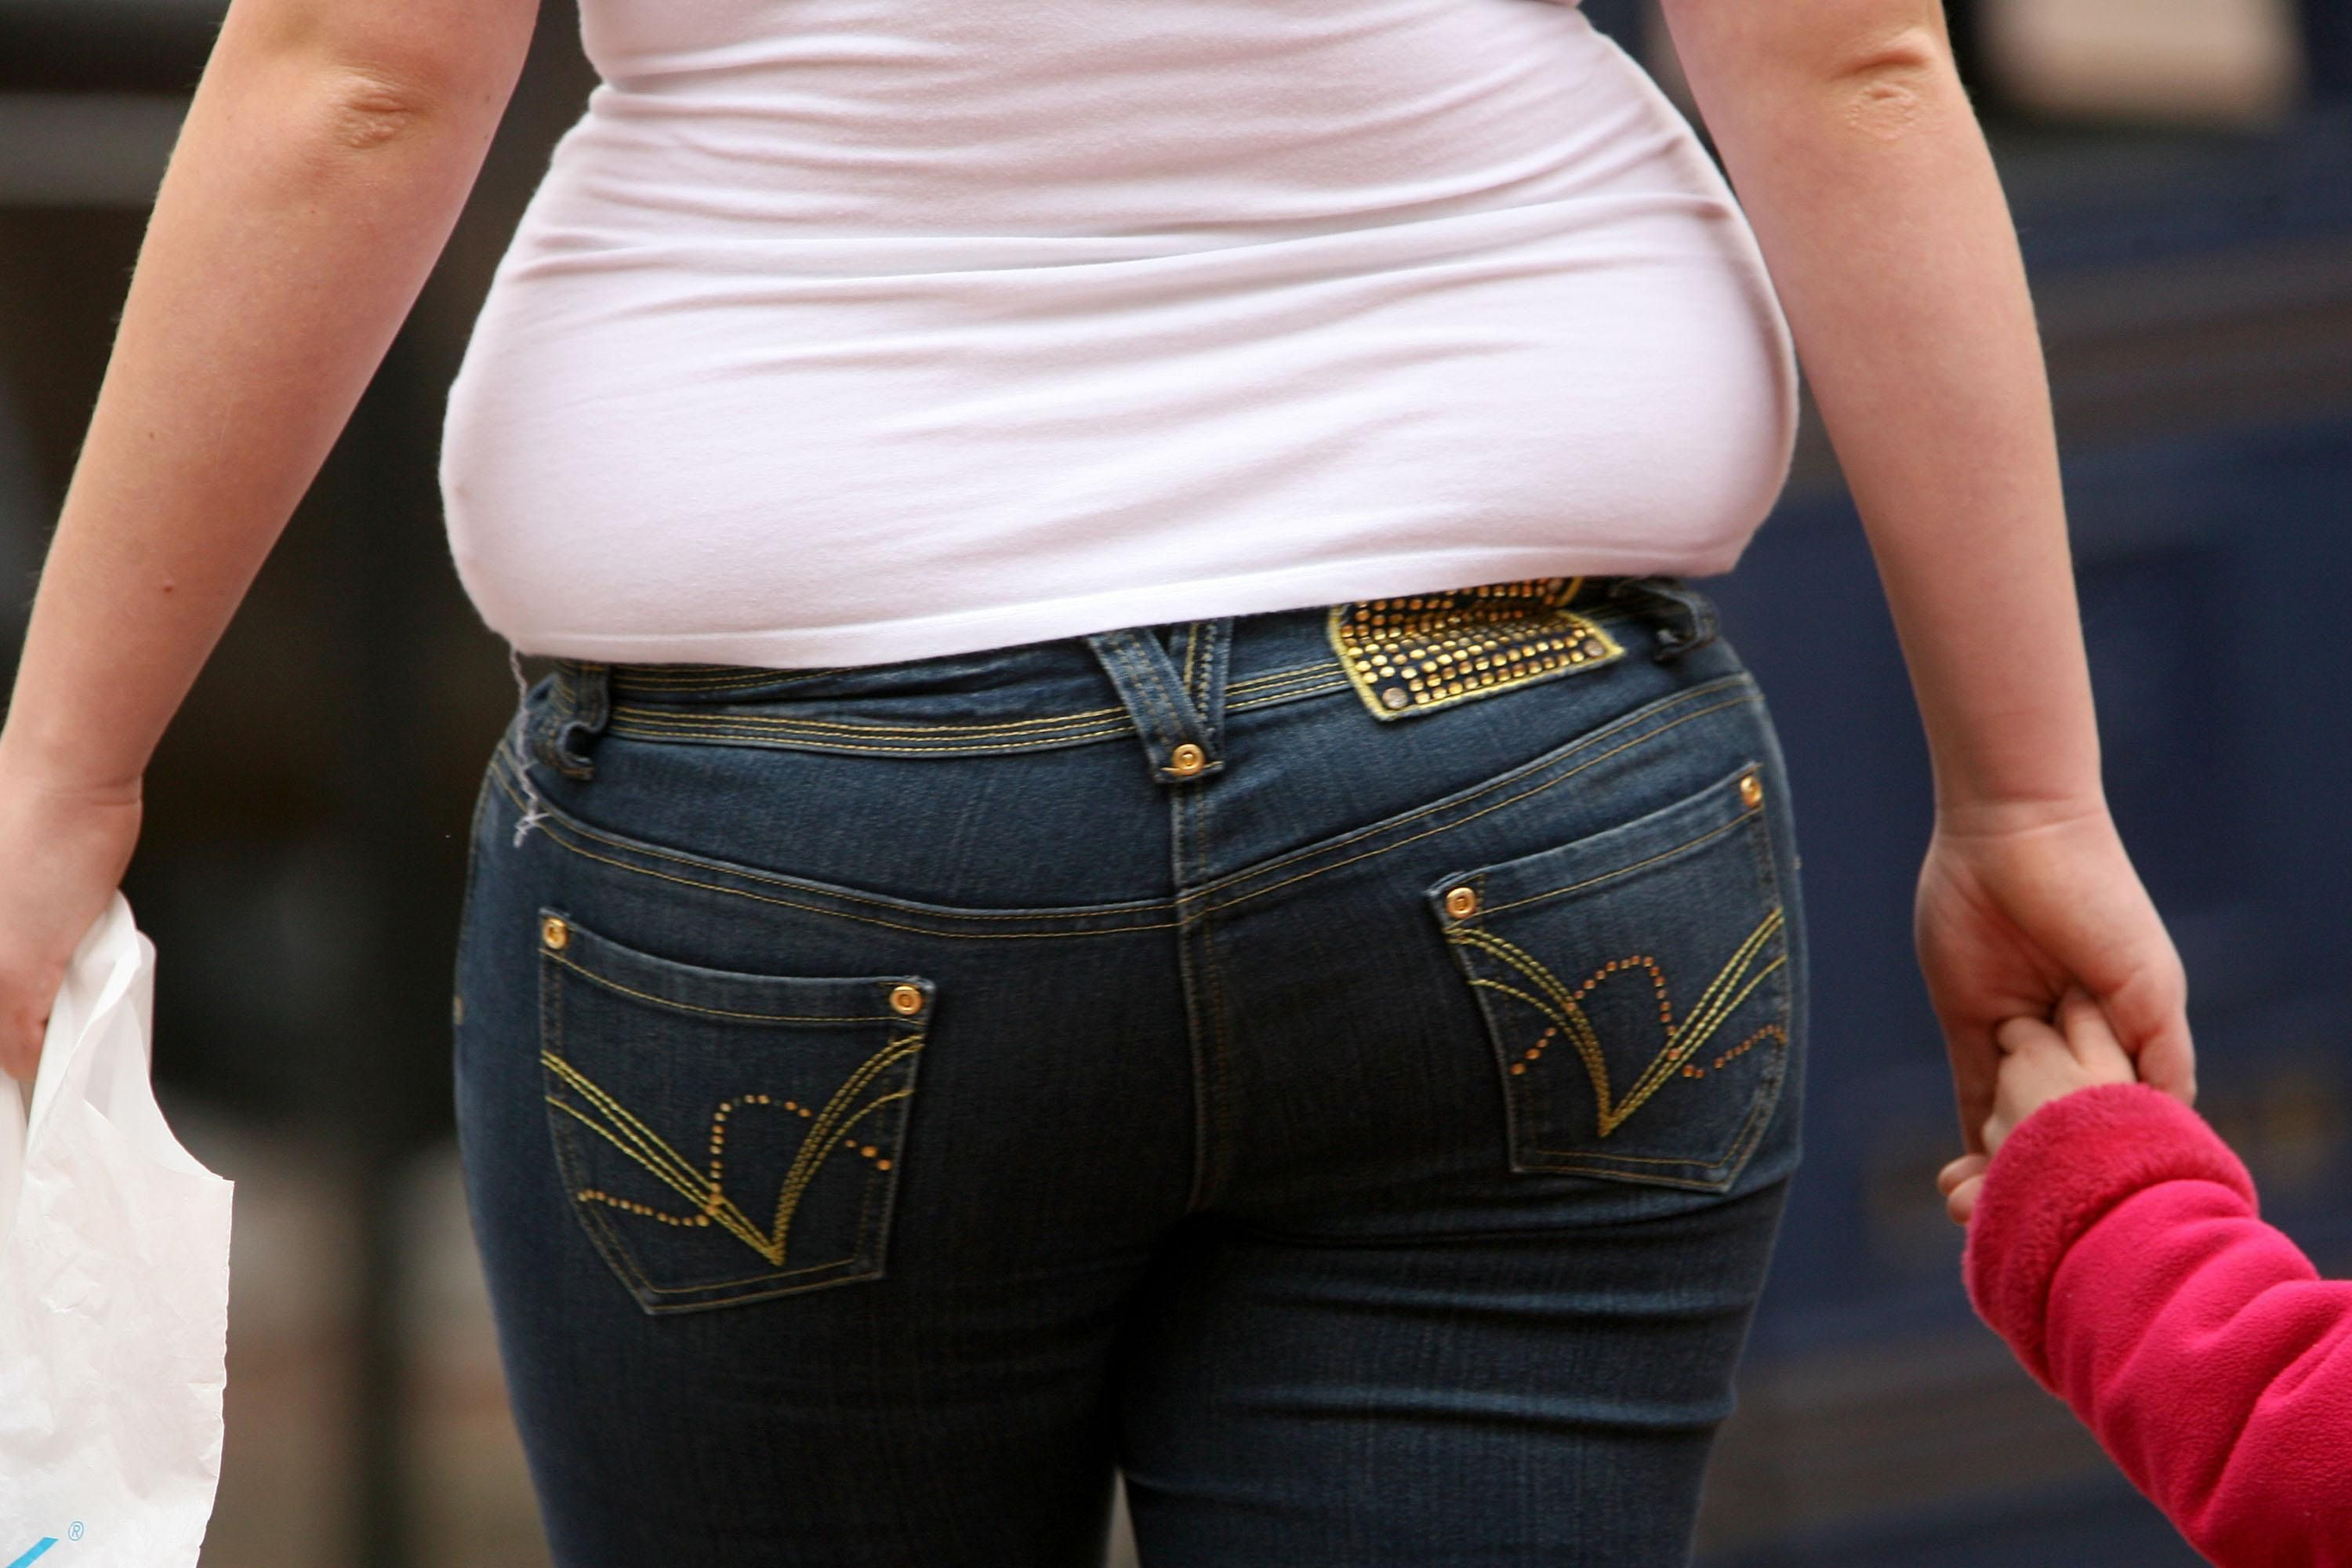 The 10 Fattest Countries in the World